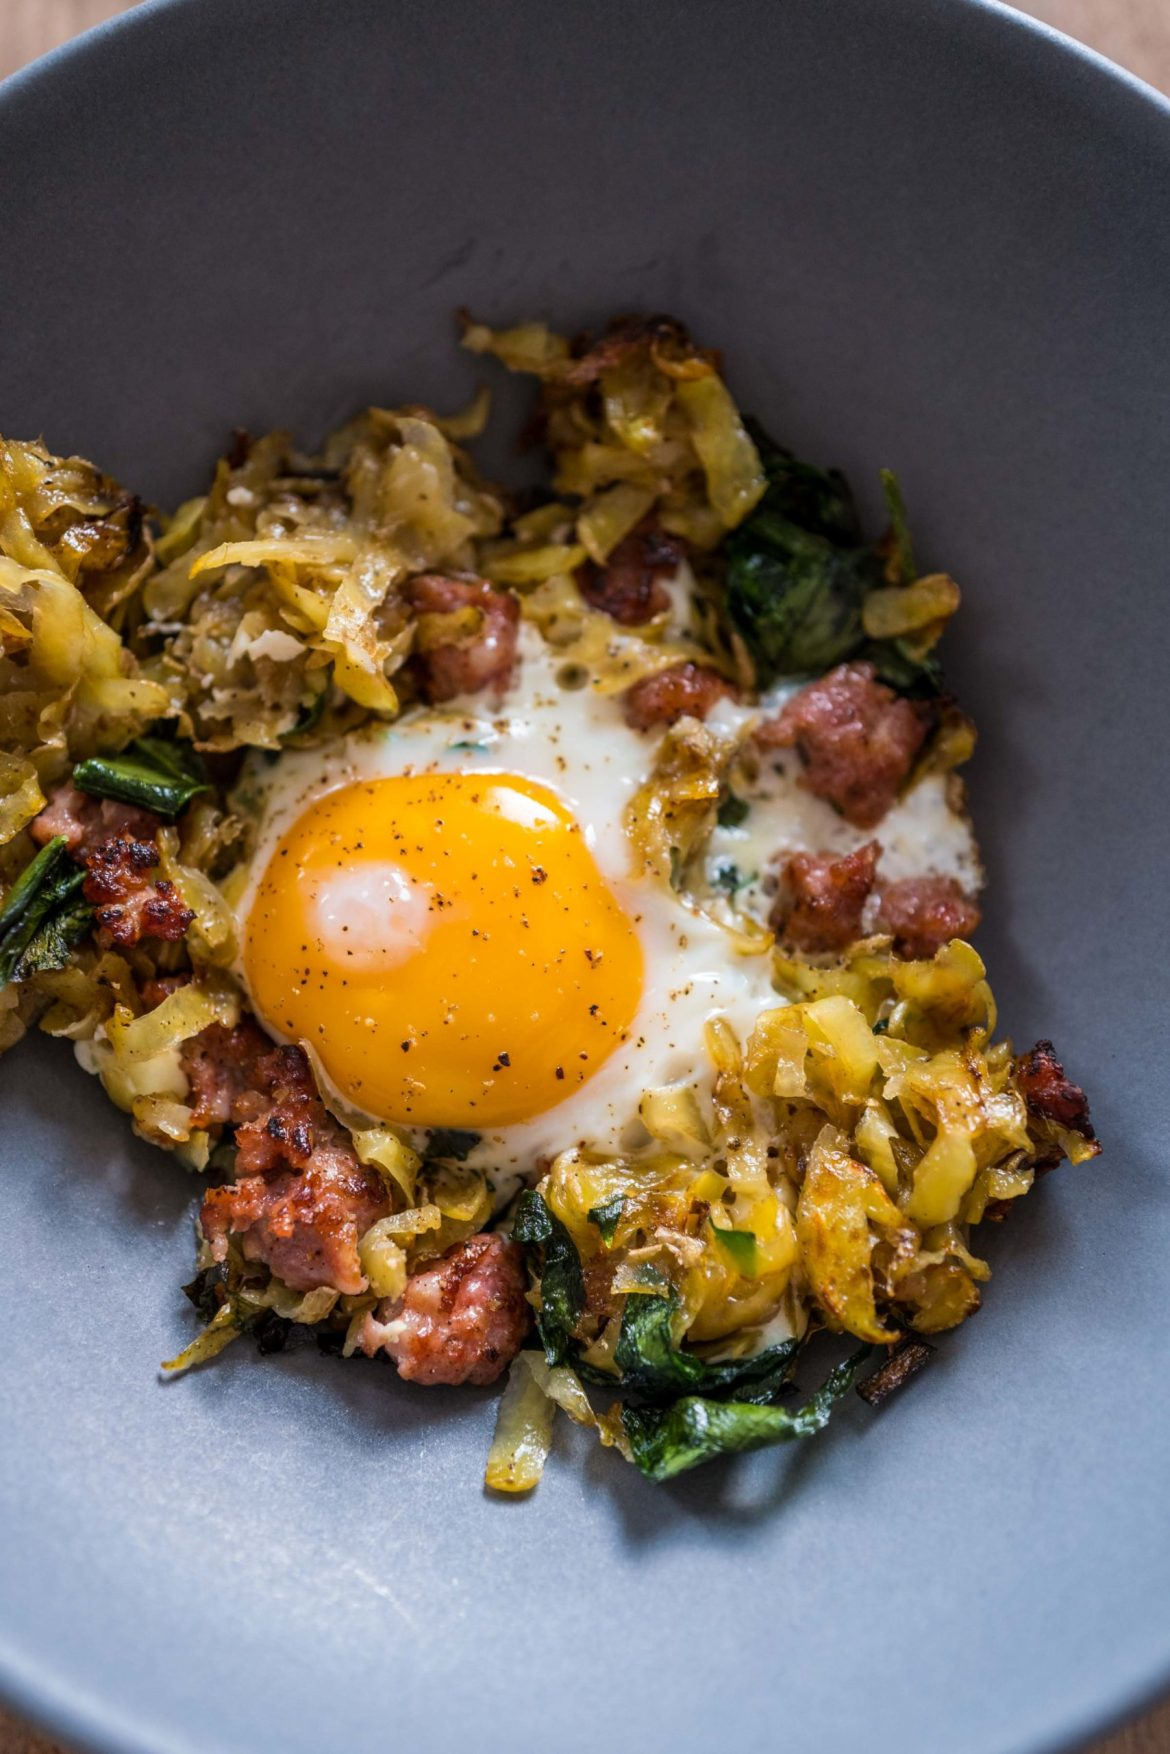 Make the best homemade hash browns recipe with crumbled sausage and ramps for breakfast this weekend. You can use wild garlic or kale if you don't have ramps. #recipe #breakfast #easy